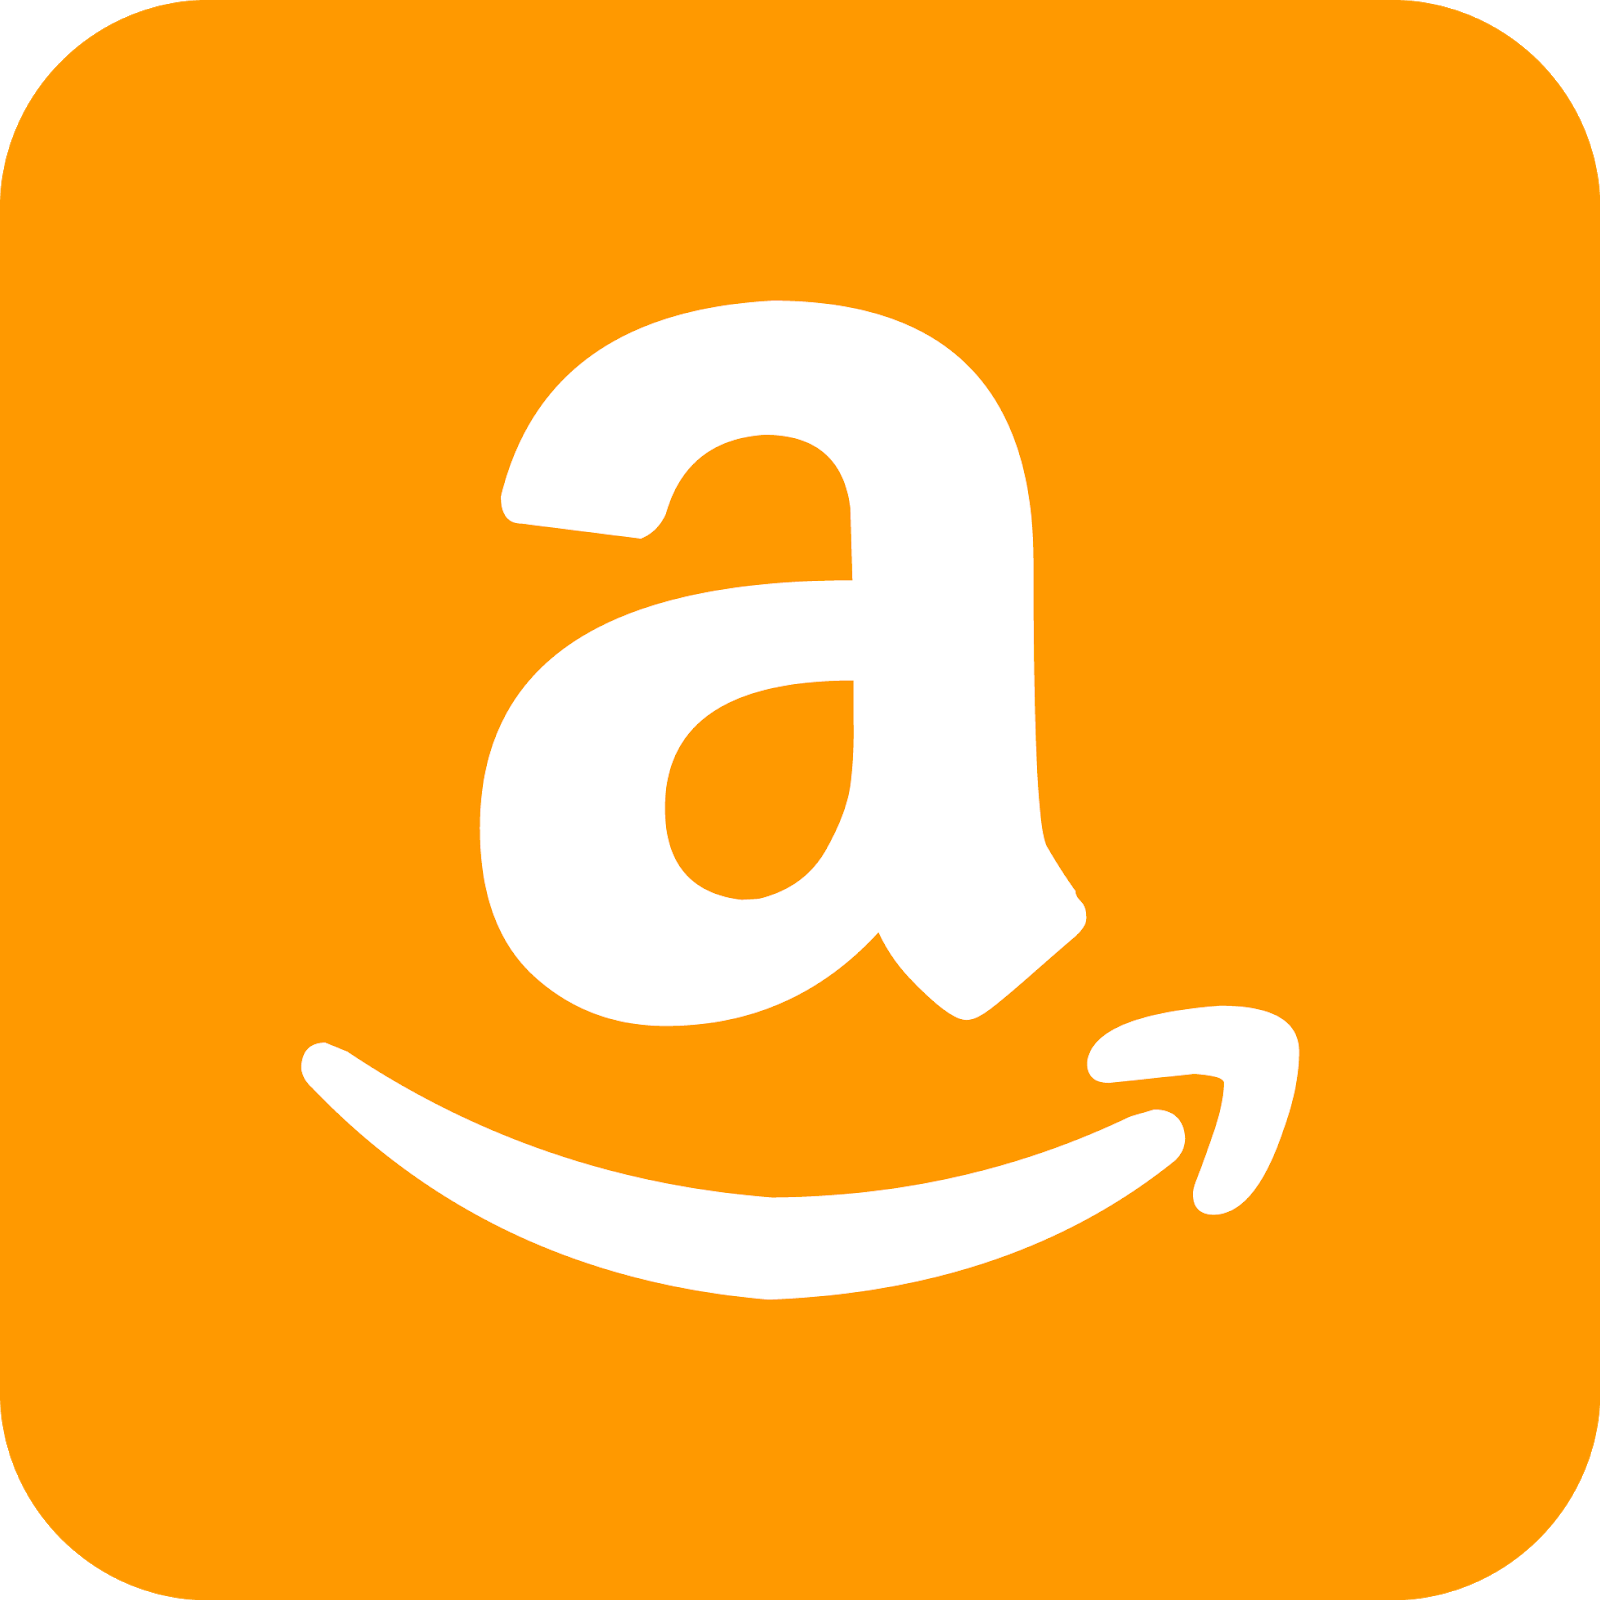 download amazon logo svg eps png psd ai vector color free.